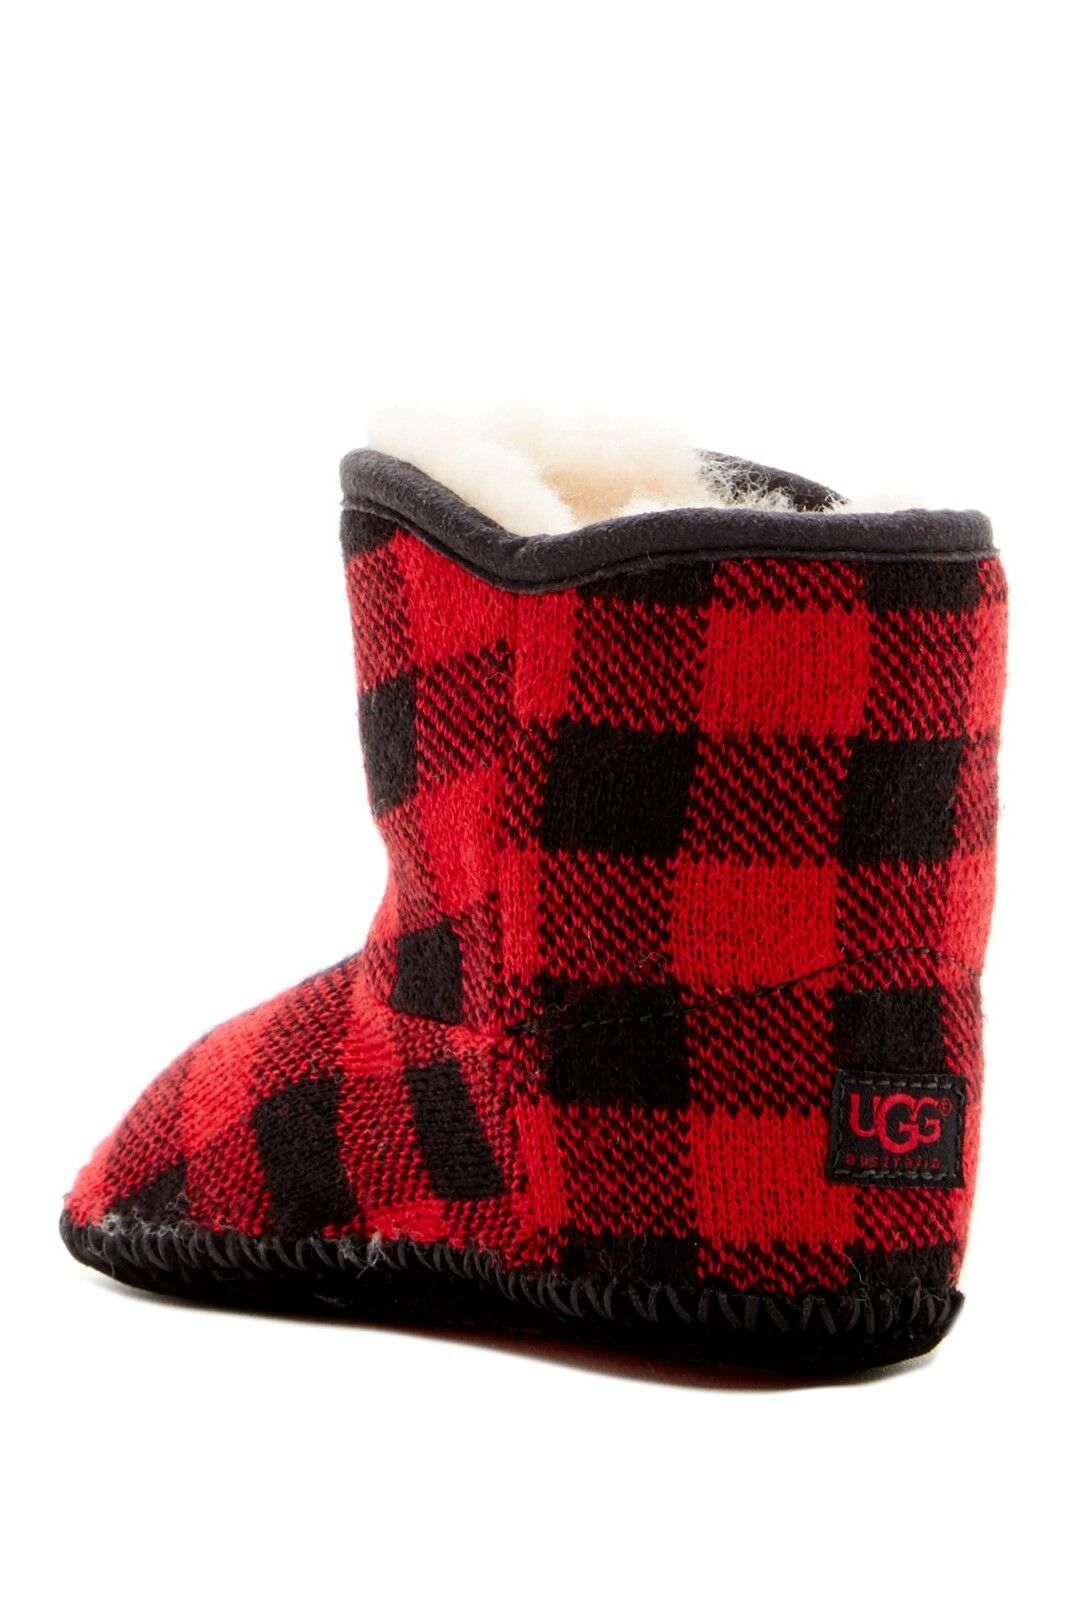 UGG Australia Red Purl Pine Button Boot for Infant Size 2-3 NIB $60 1